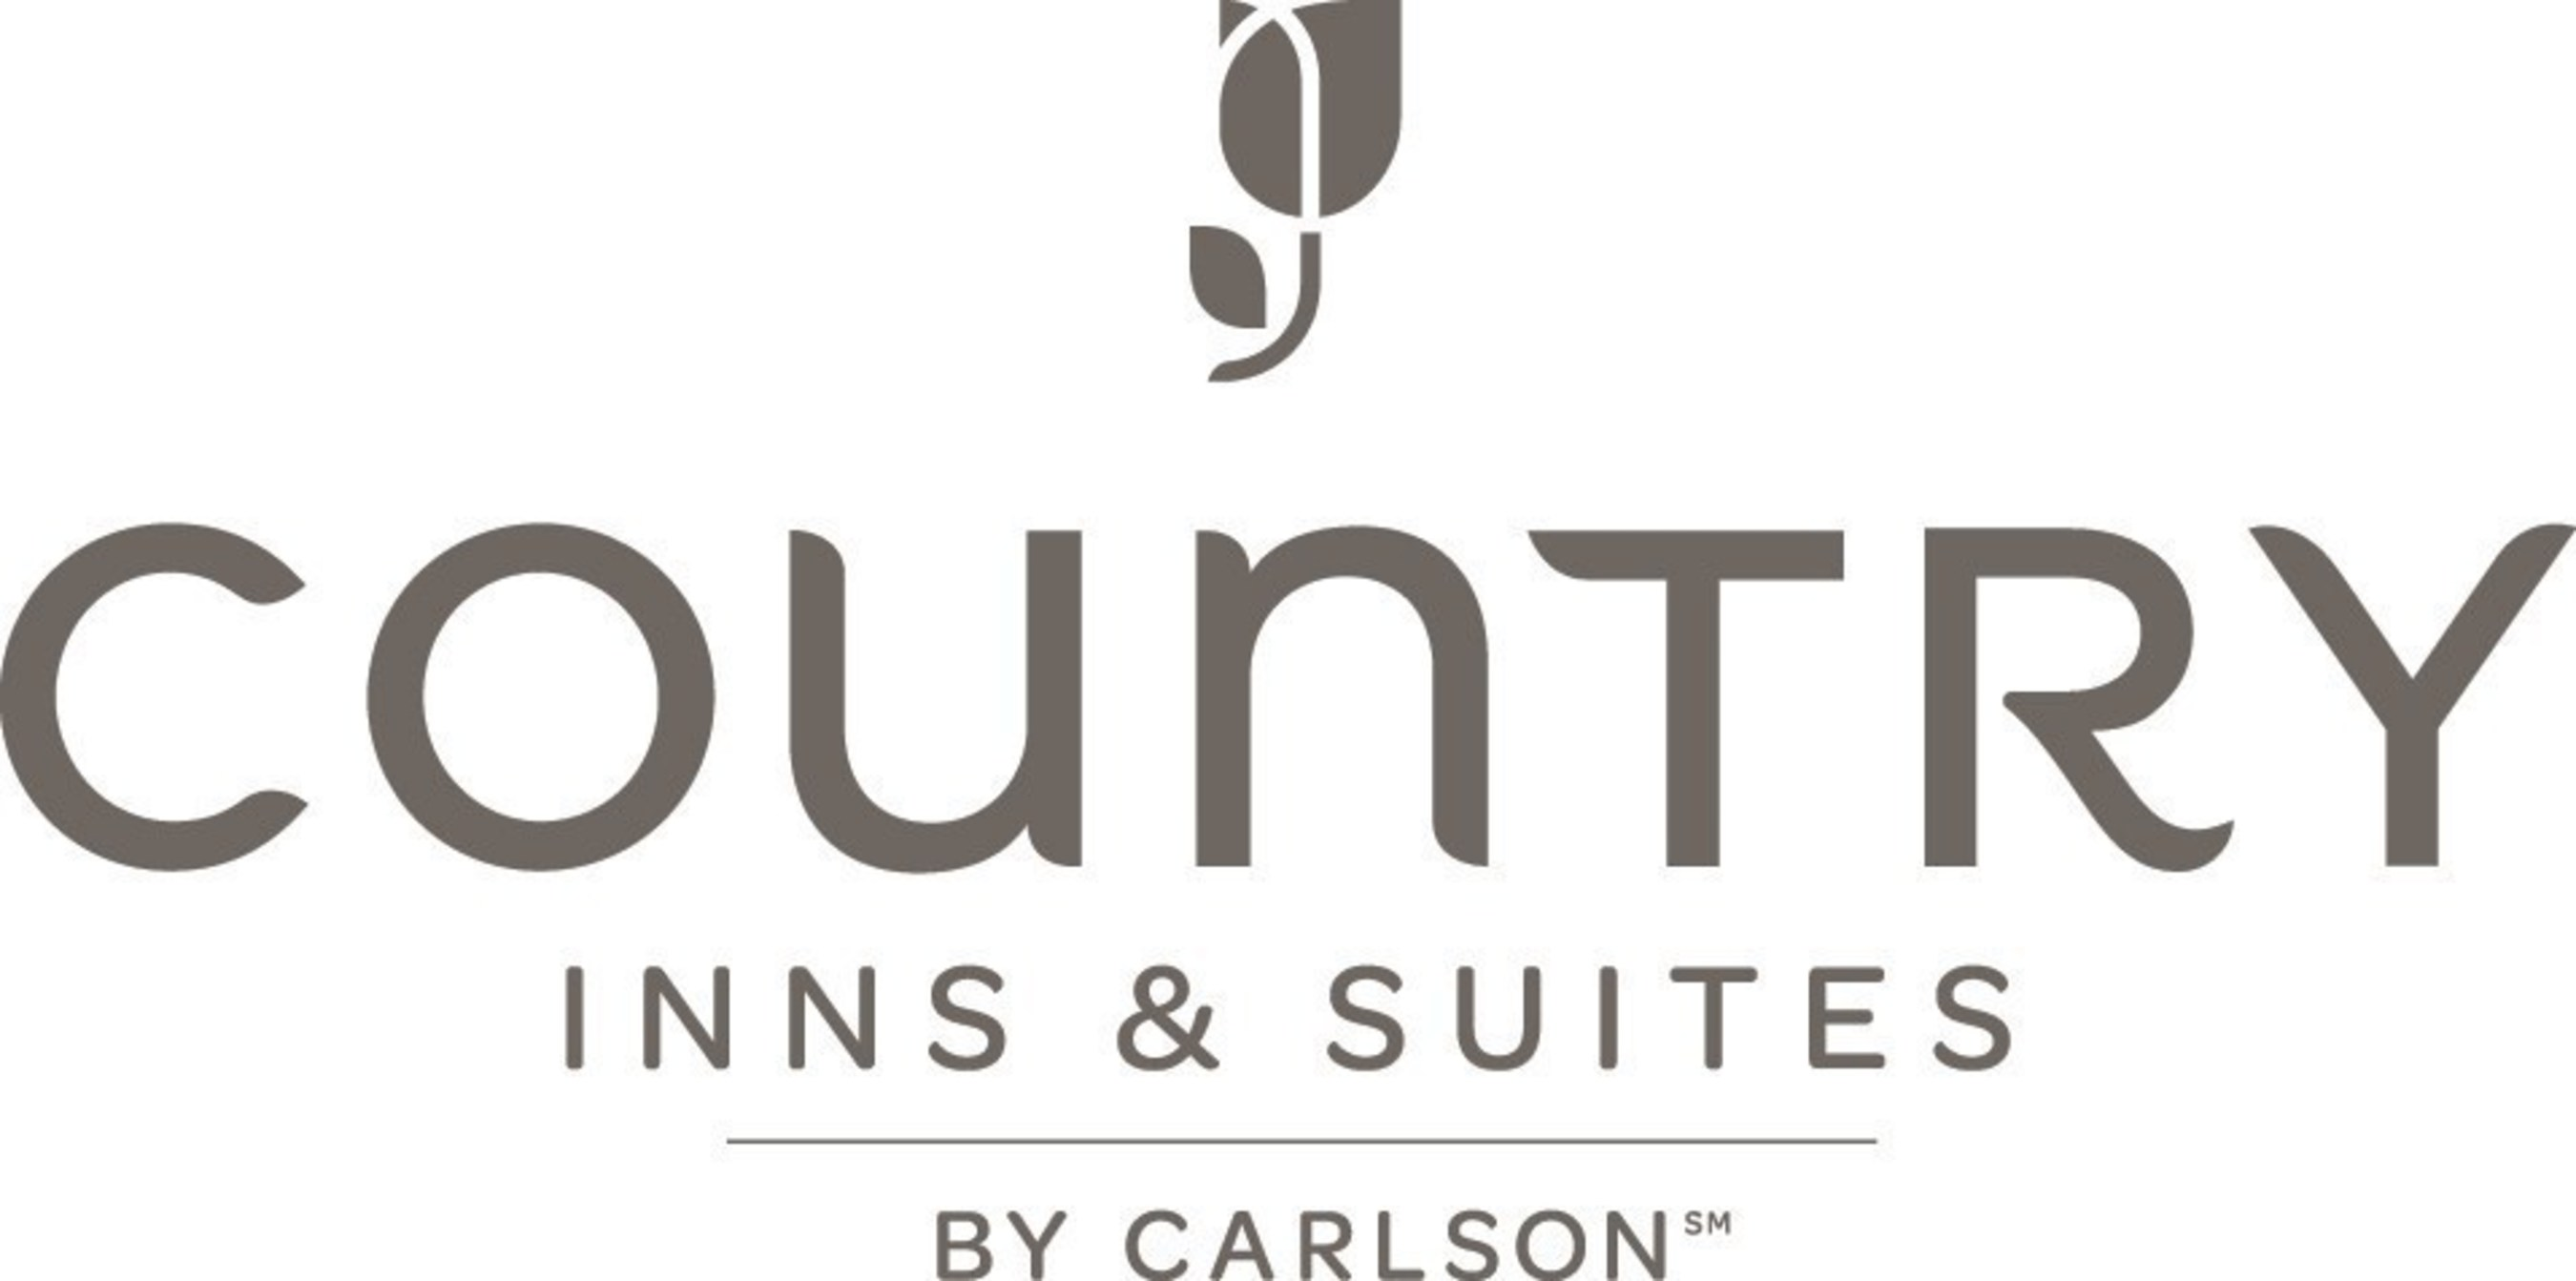 Country Inn & Suites By Carlson(SM) Logo